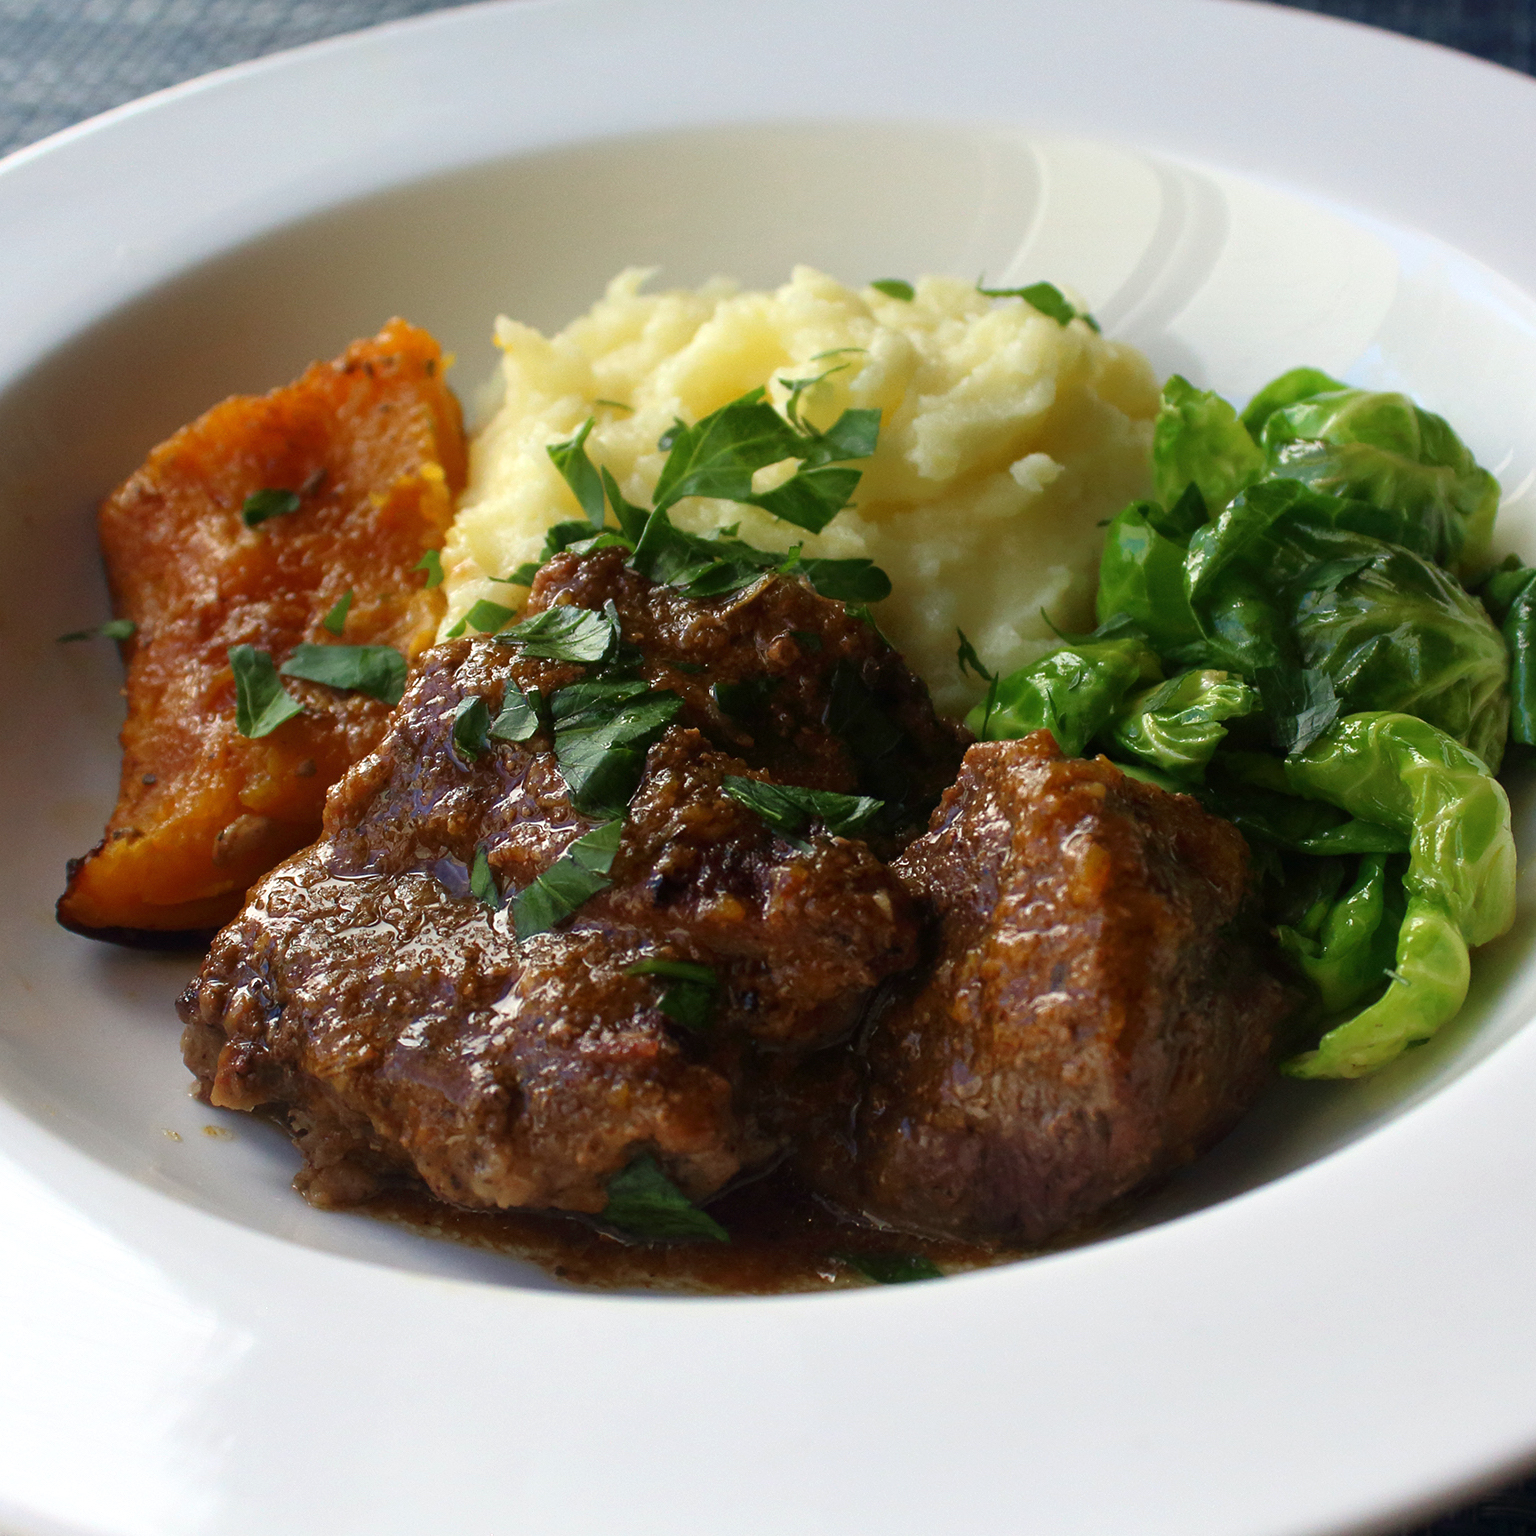 Chef John's Pumpkin-Braised Pork